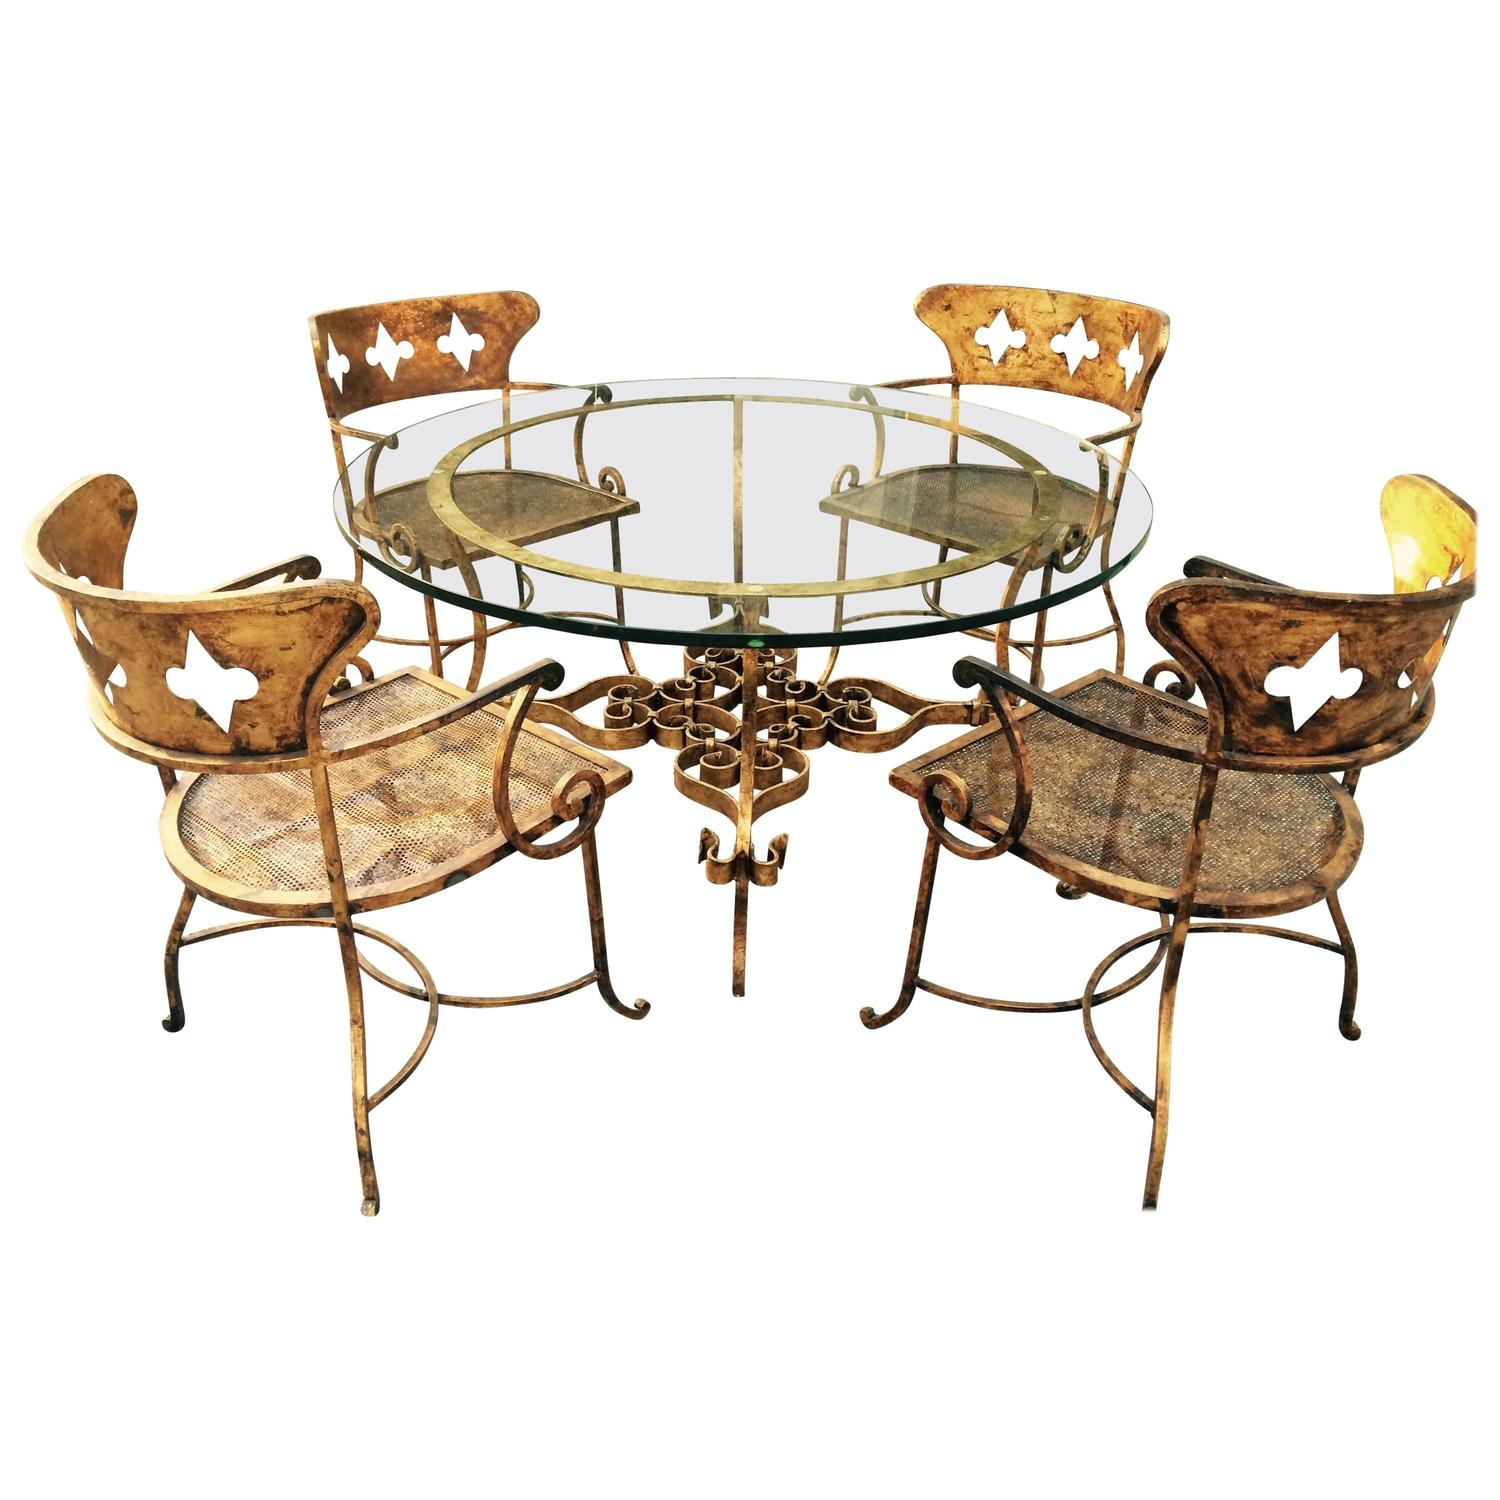 Sale On Dining Sets: Indoor Outdoor Italian Gilt Iron Dining Set For Sale At